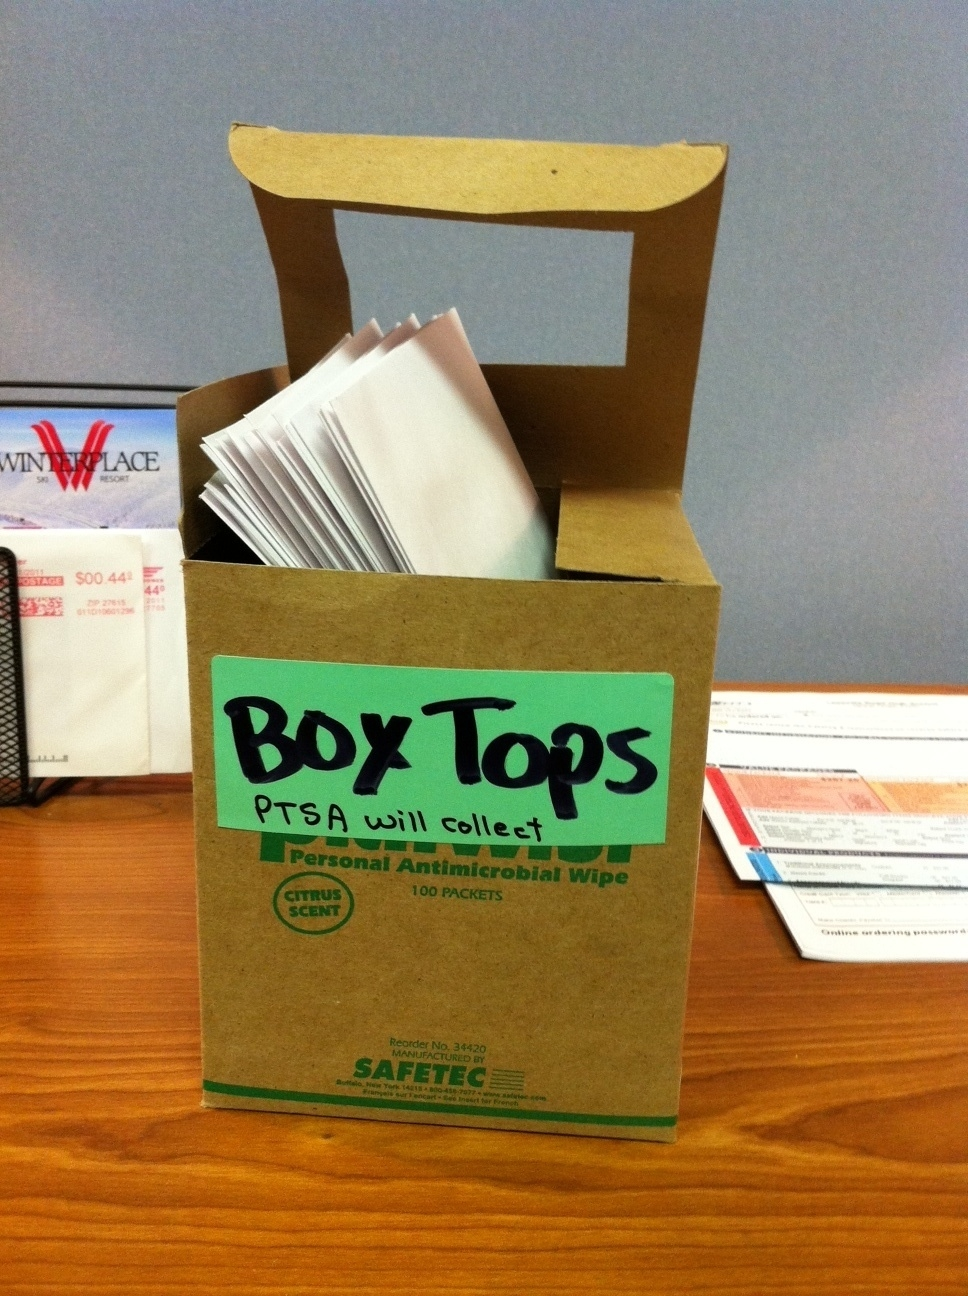 Leesville elementary, middle, and high schools are all working together to collect Box Tops. Students can bring their box tops to the front office to donate.